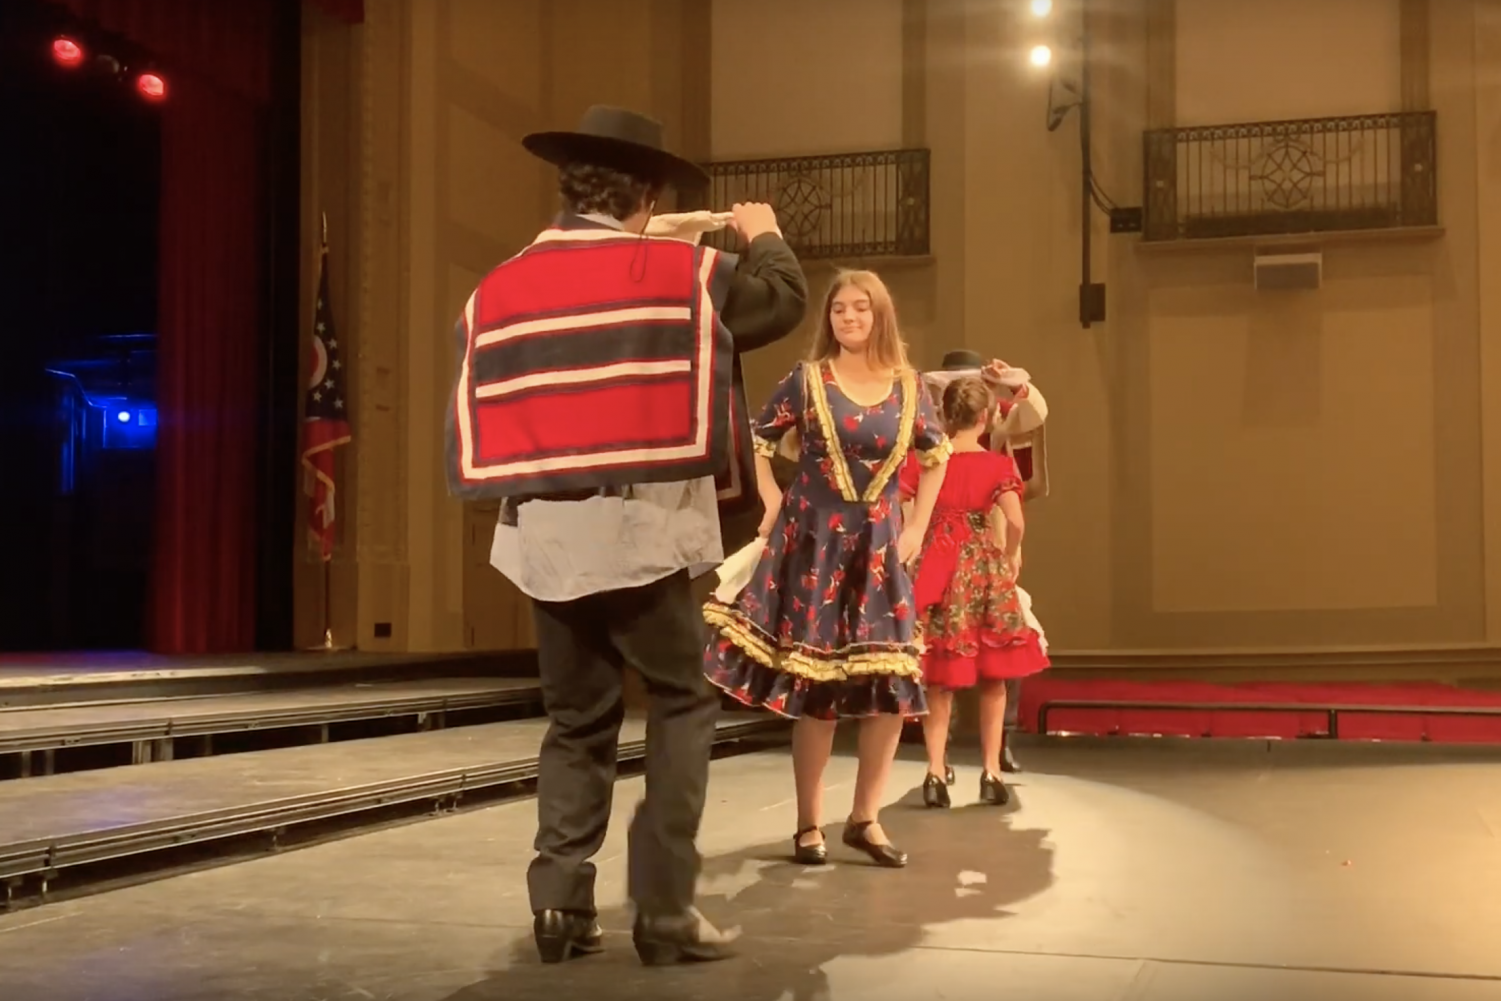 Chileans present their traditional dance, the Cueca, to students at the welcome assembly.